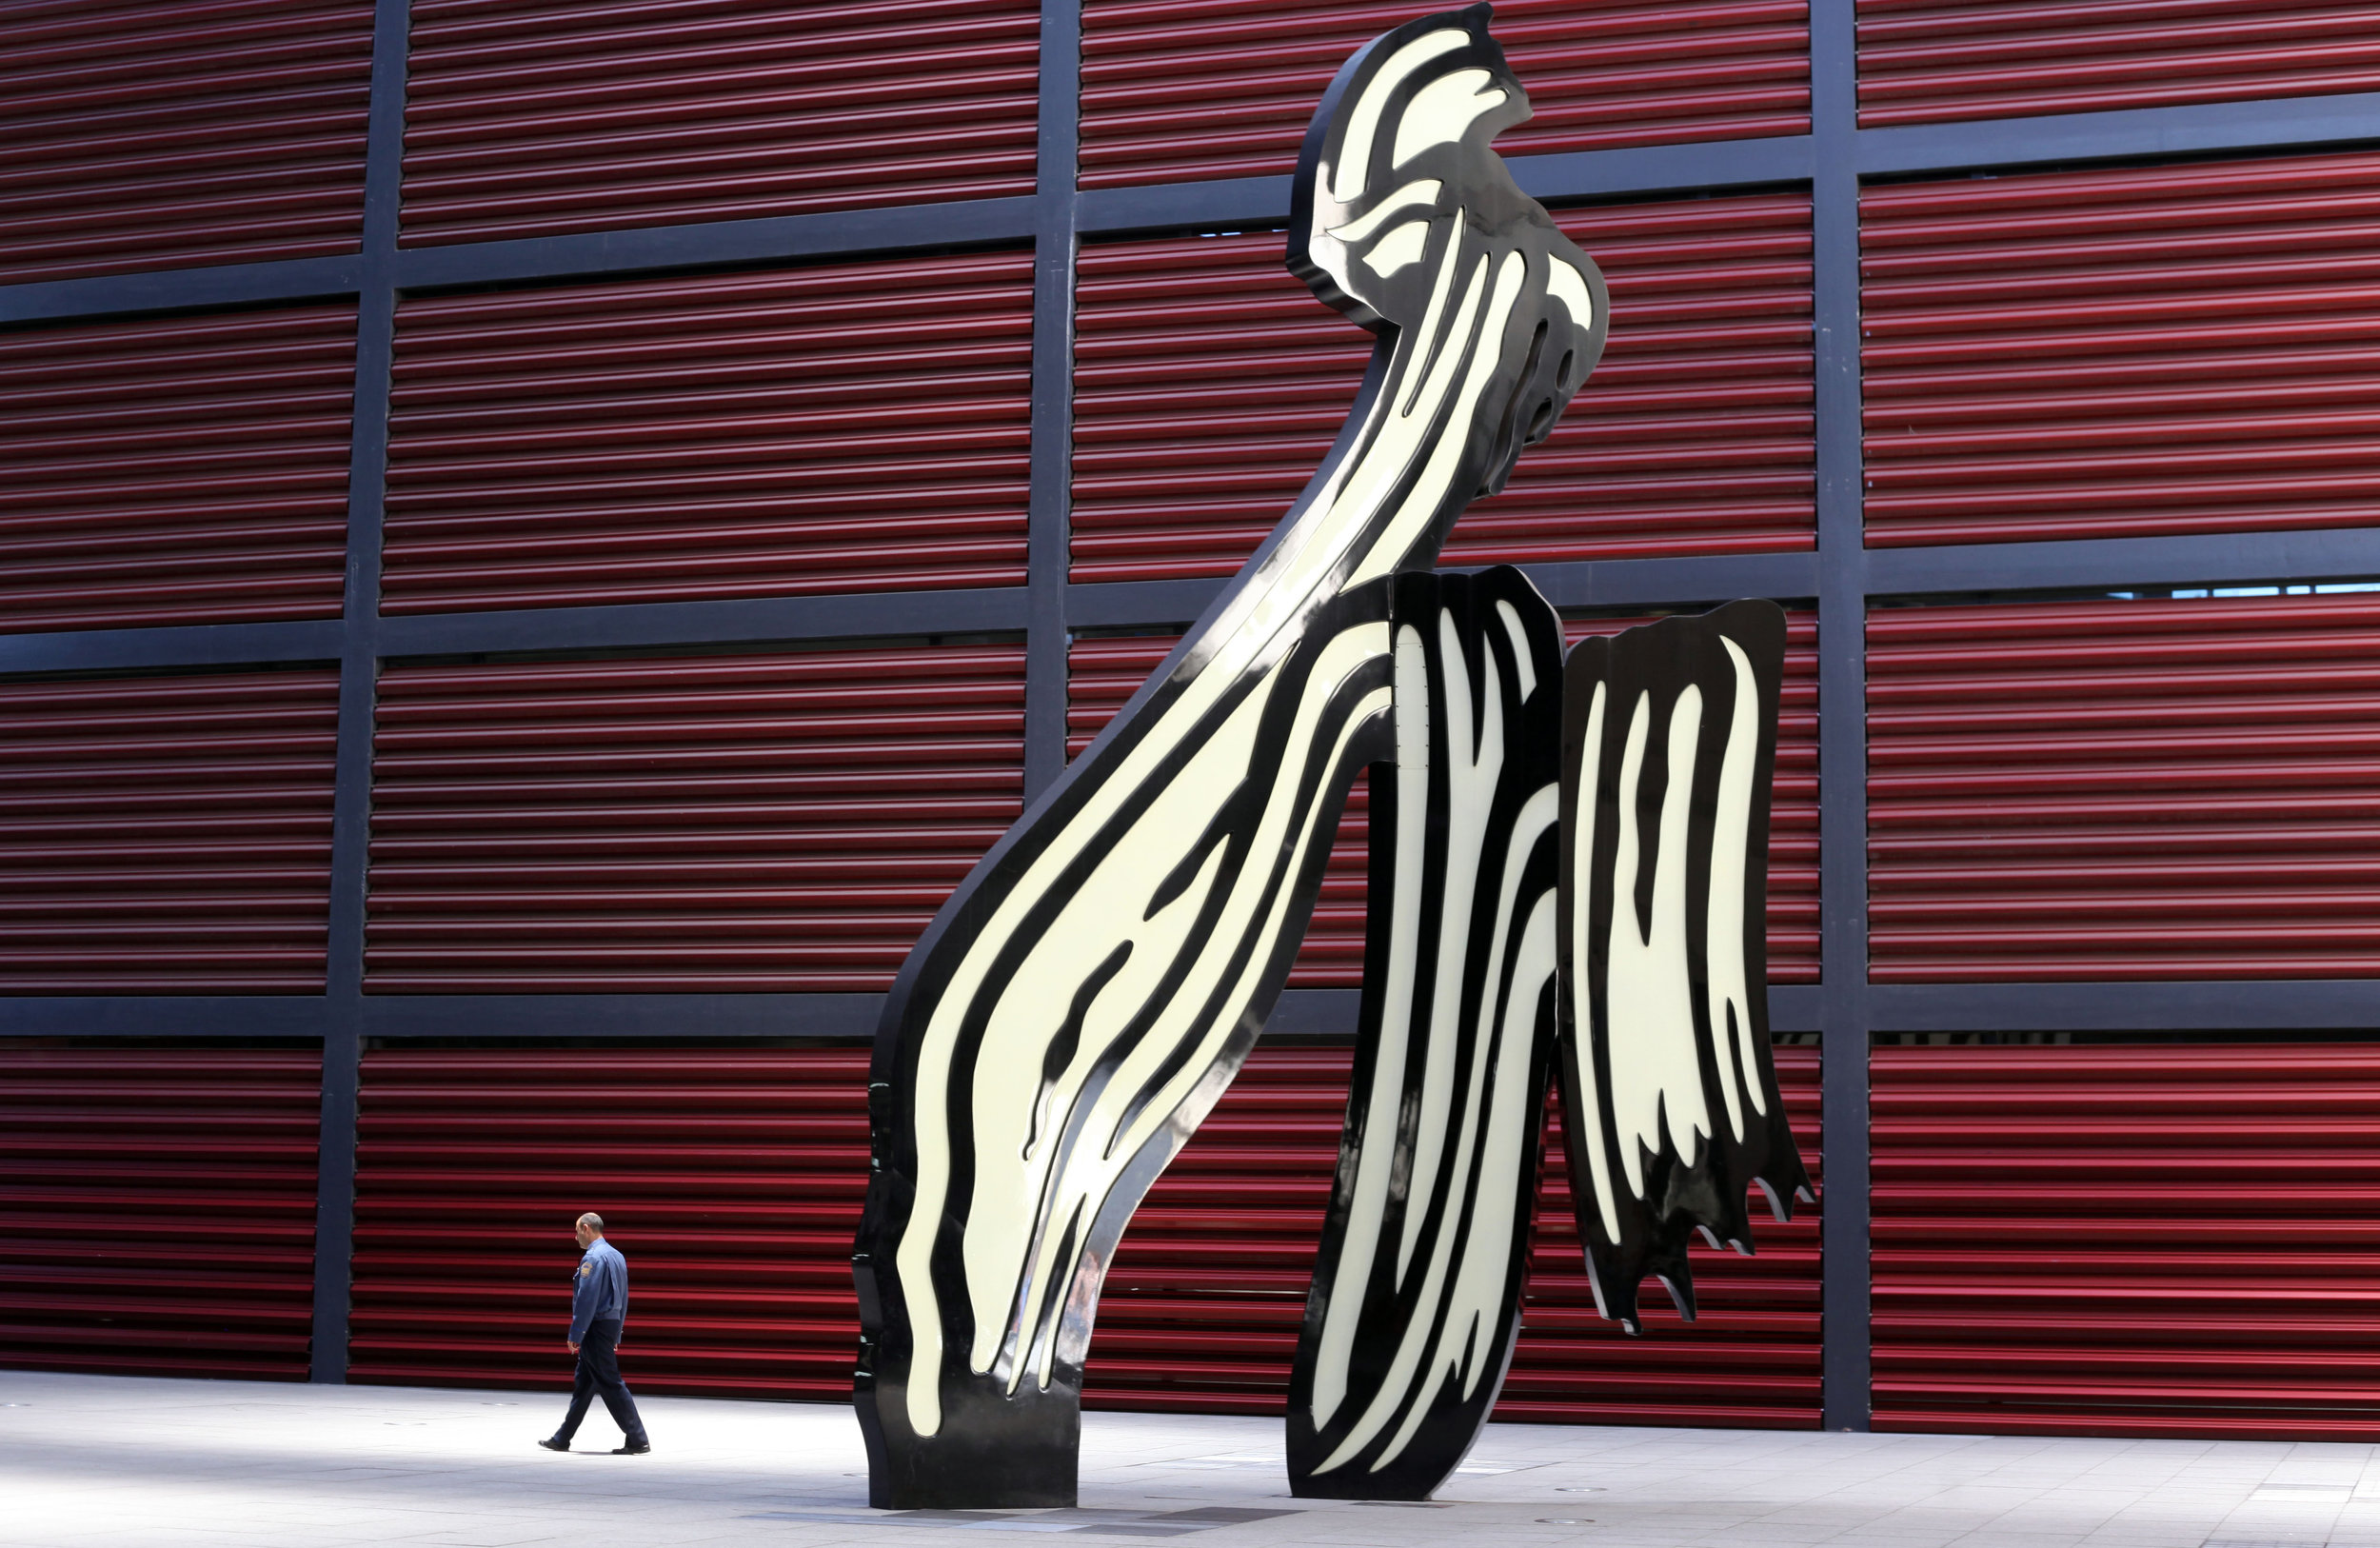 A visitor walks past a sculpture on display at the Museo Nacional Centro de Arte Reina Sof�a gallery in Madrid, Spain.